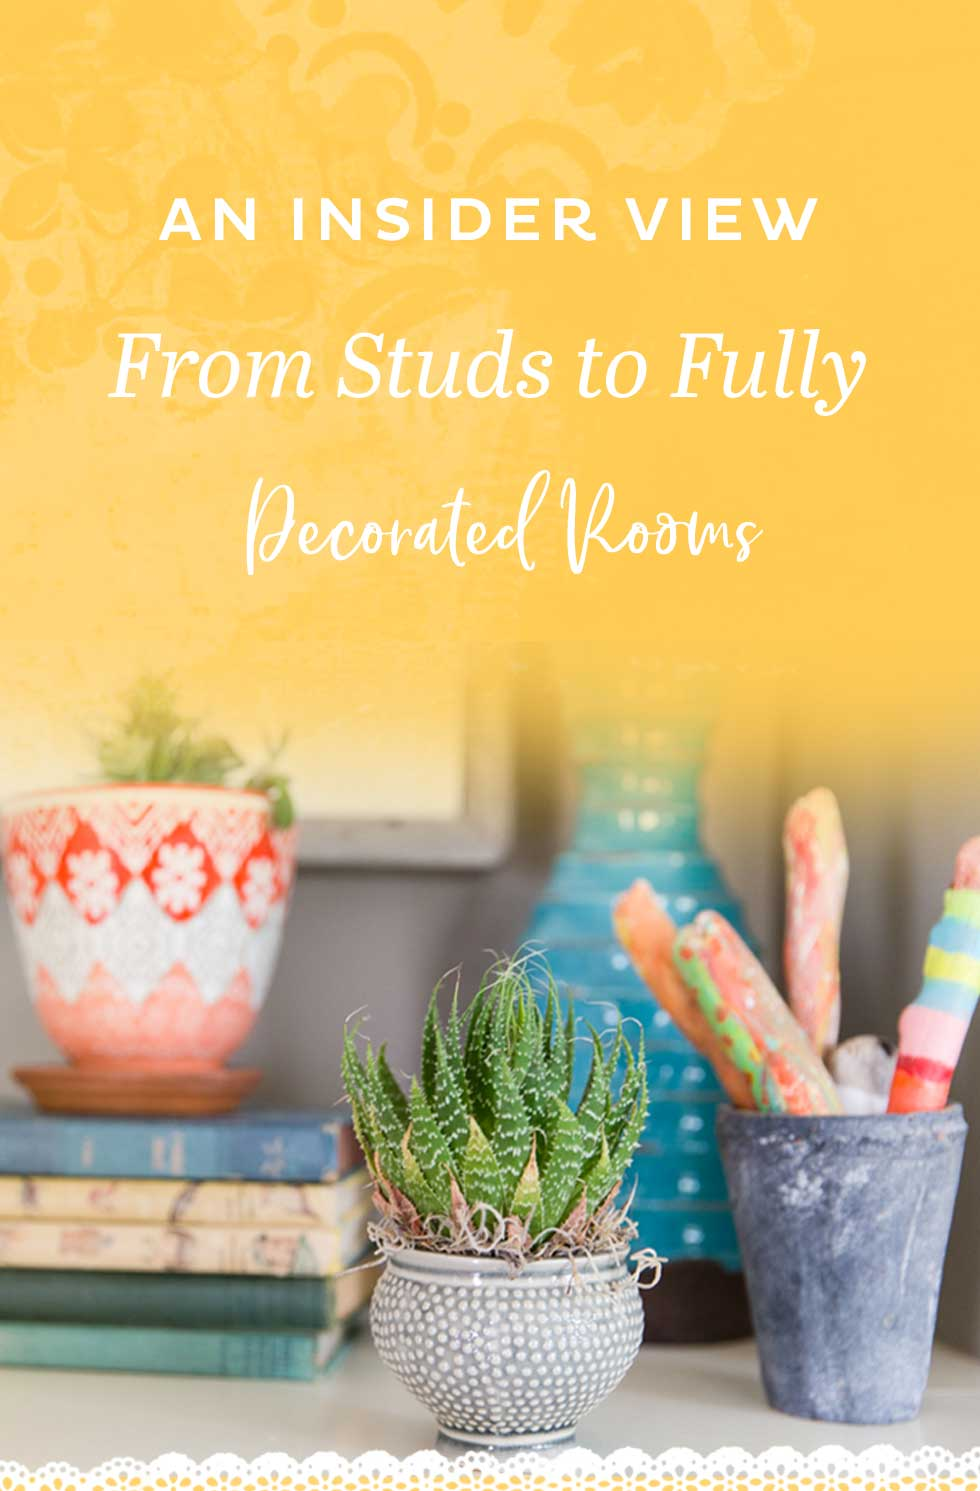 An insider view From Studs to Fully Decorated Rooms